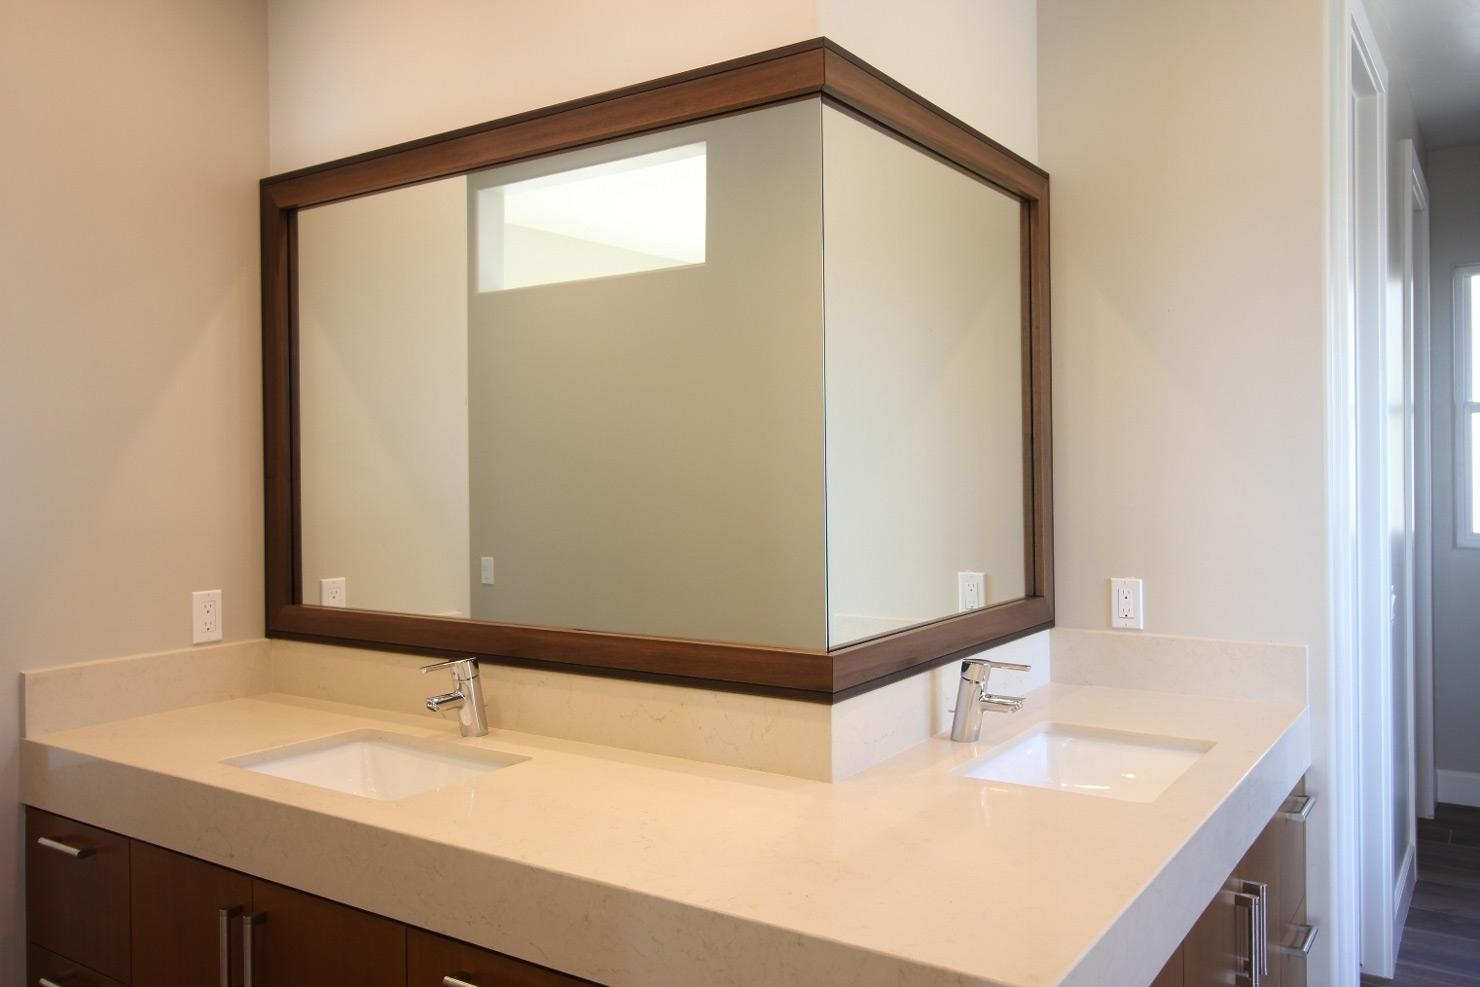 Home Decor : Commercial Bathroom Mirrors Old Fashioned Medicine With Regard To Commercial Bathroom Mirrors (Image 15 of 20)